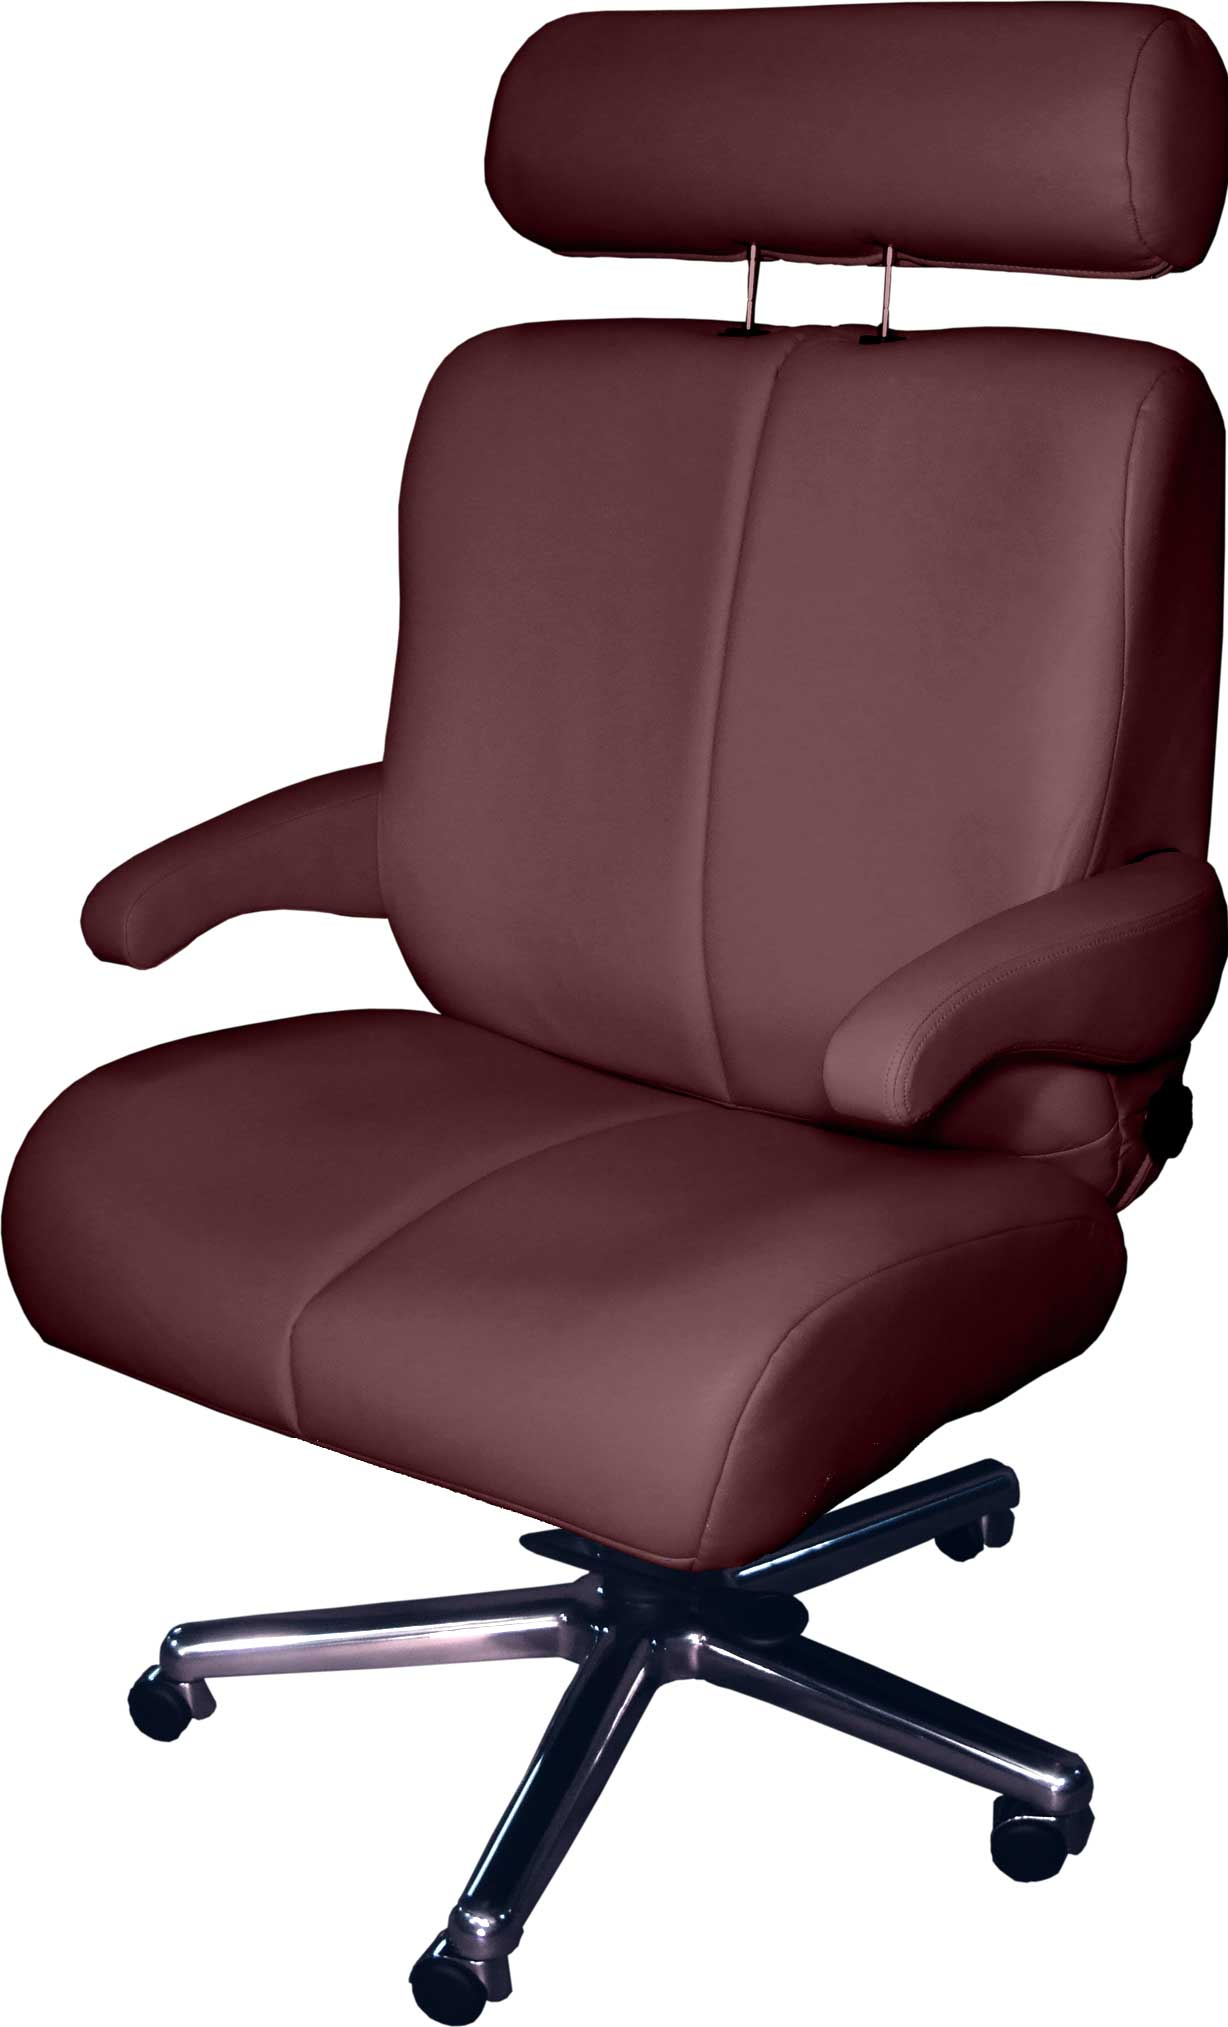 Luxury Office Chair Luxury Office Chair For Elegant Look